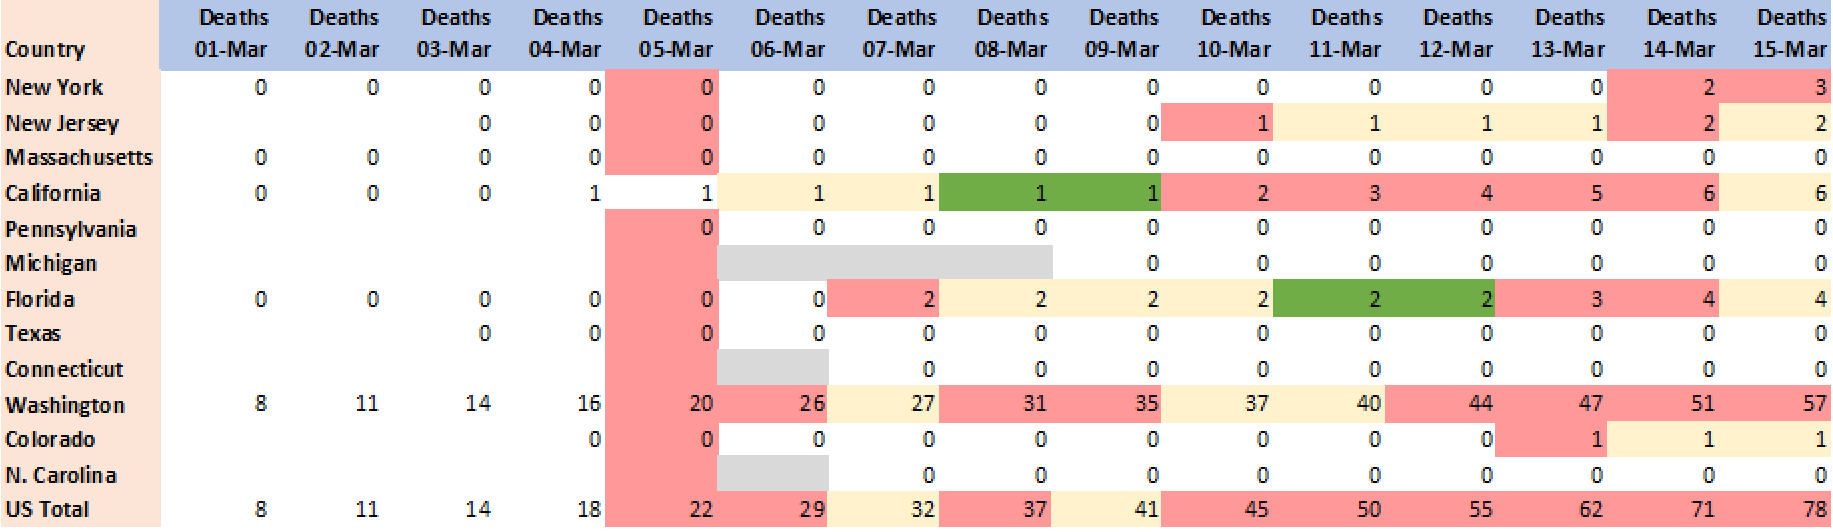 Outcome of death, period 01-Mar-2020 to 15-Mar-2020